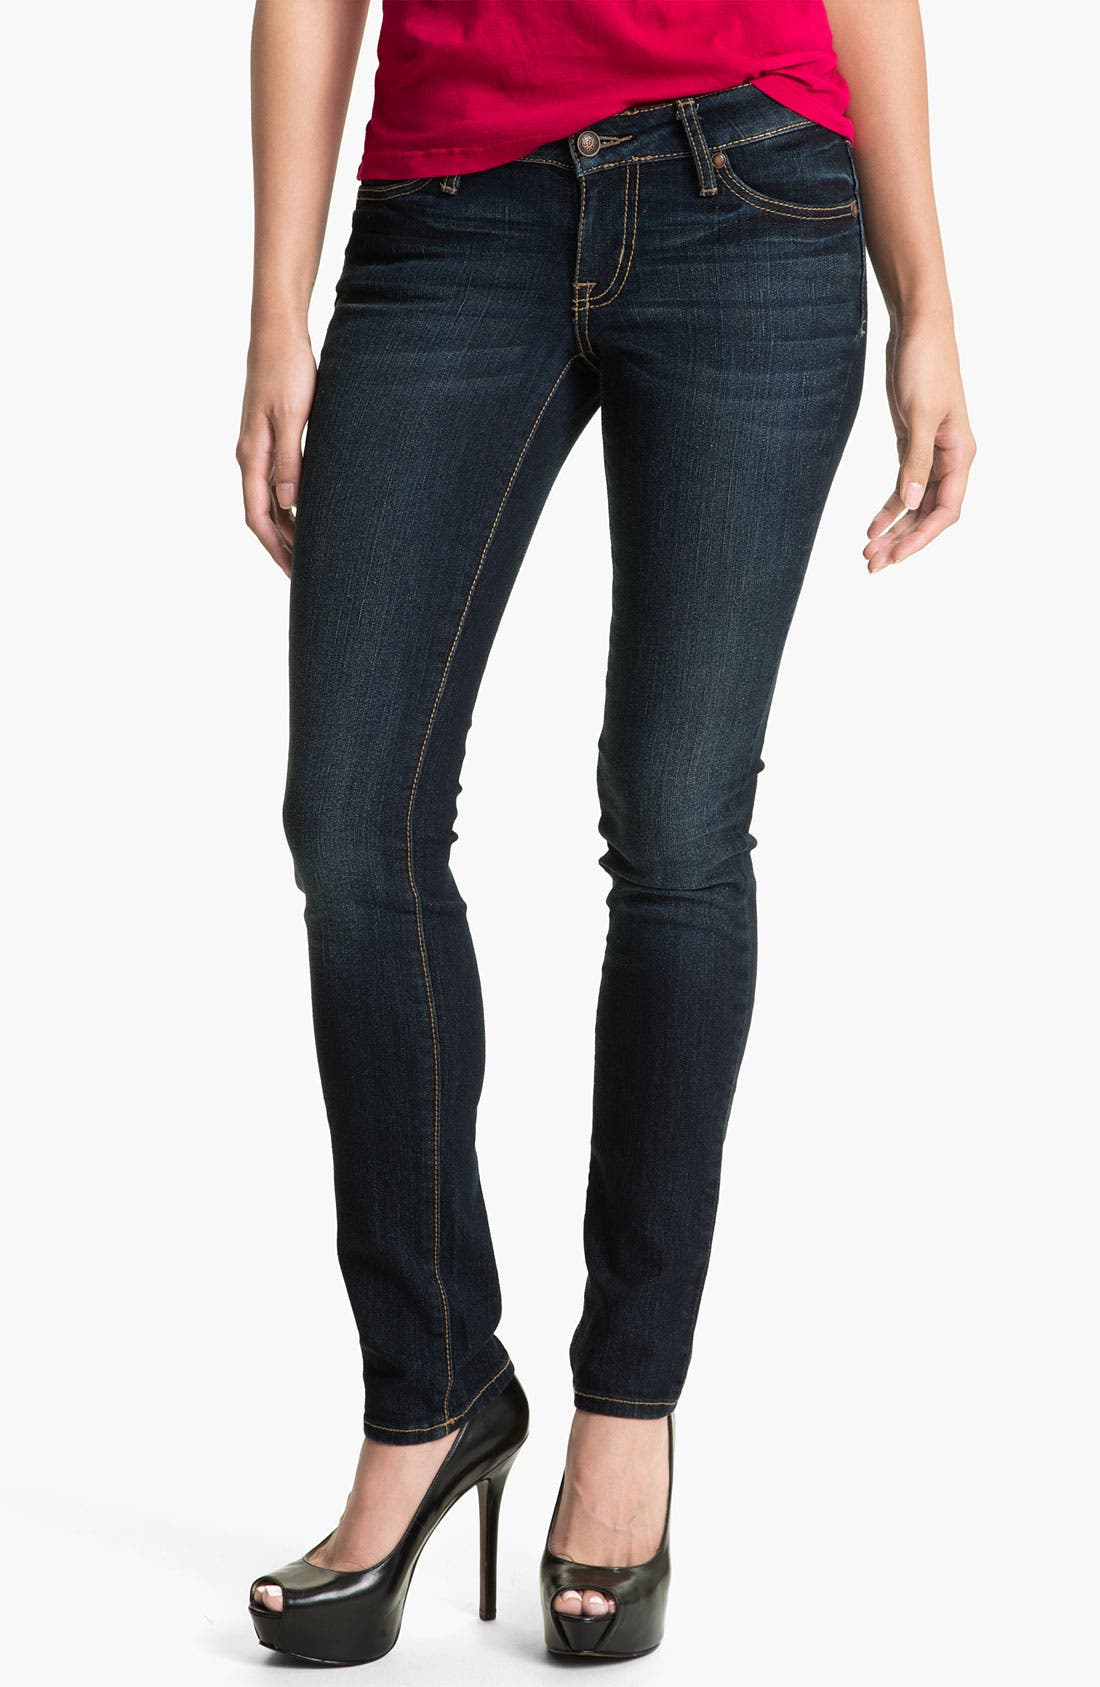 Alternate Image 1 Selected - Jessica Simpson 'Forever' Skinny Jeans (Online Only)